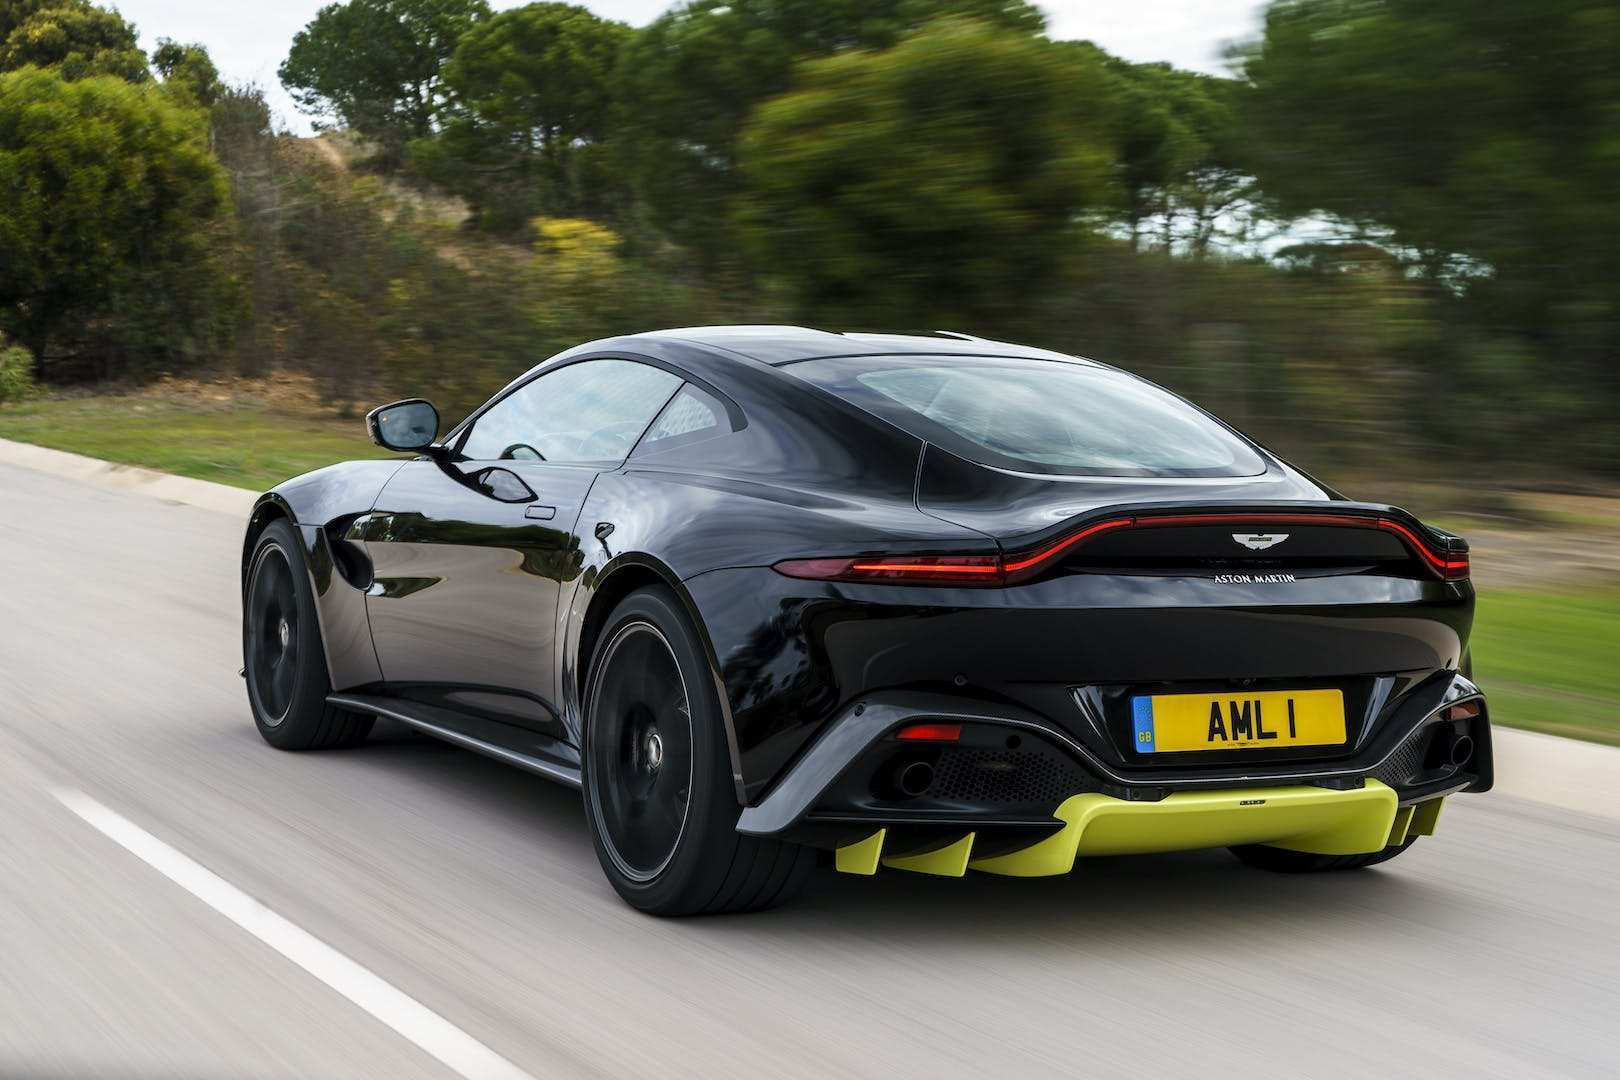 64 The 2019 Aston Martin Vantage Review Review And Release Date